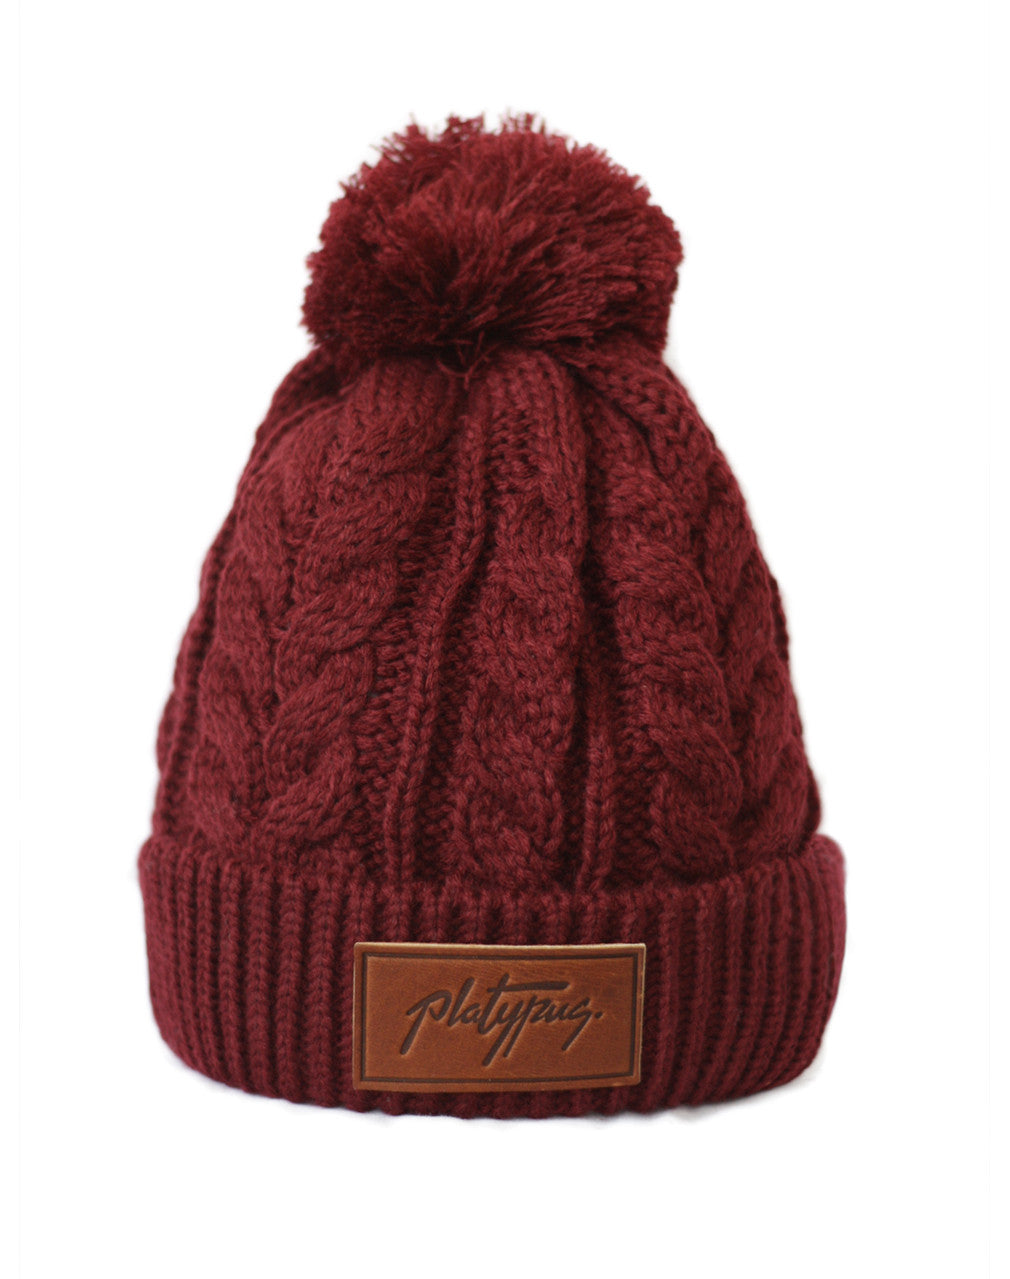 Red Wine Cable Knit Beanie with Platypus leather logo